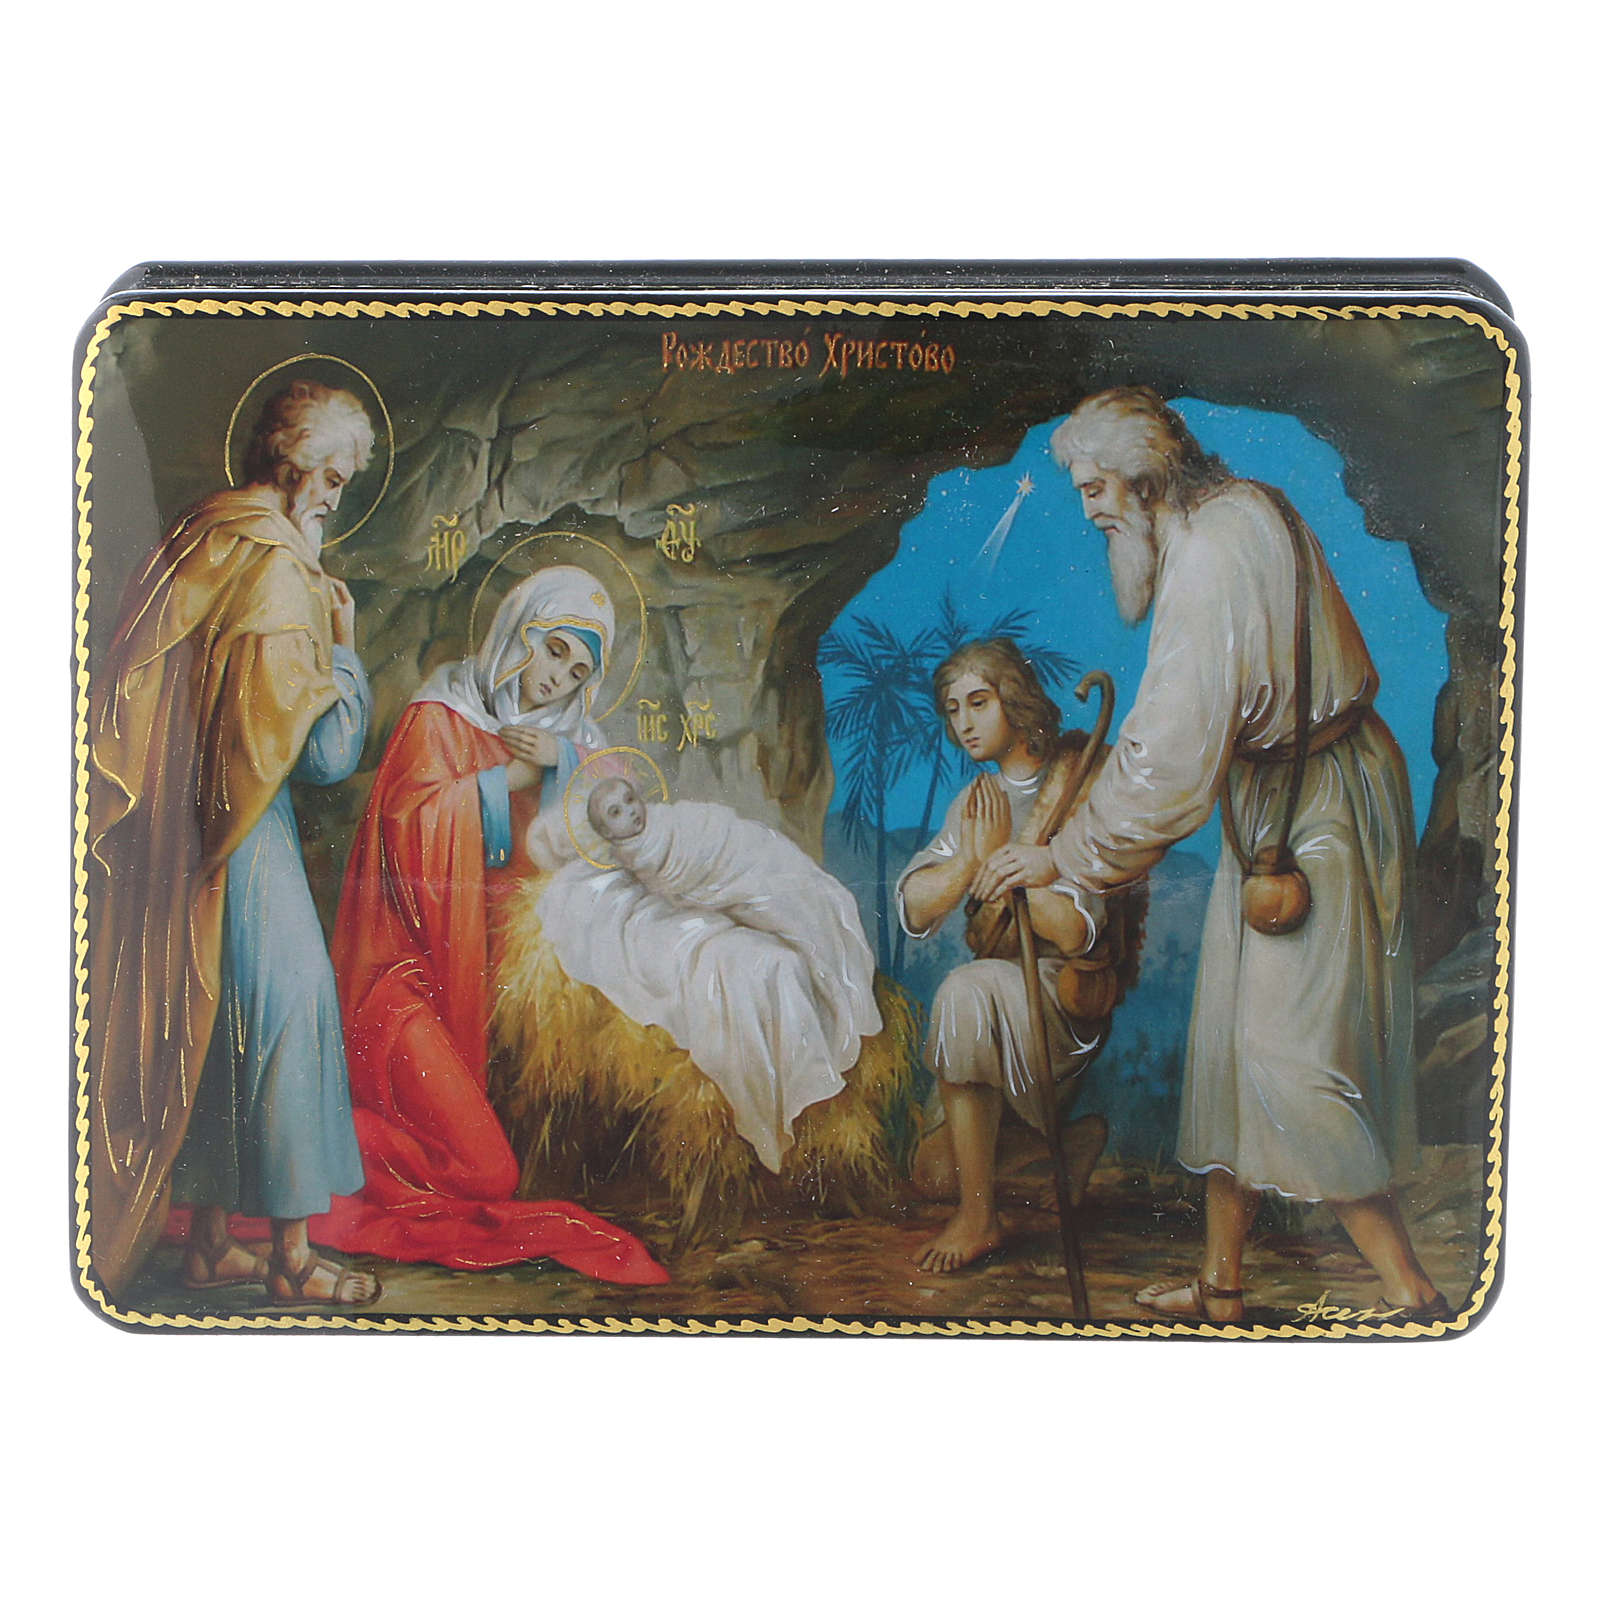 Russian box in papier-mâché the Birth of Christ Fedoskino style 15x11 cm 4